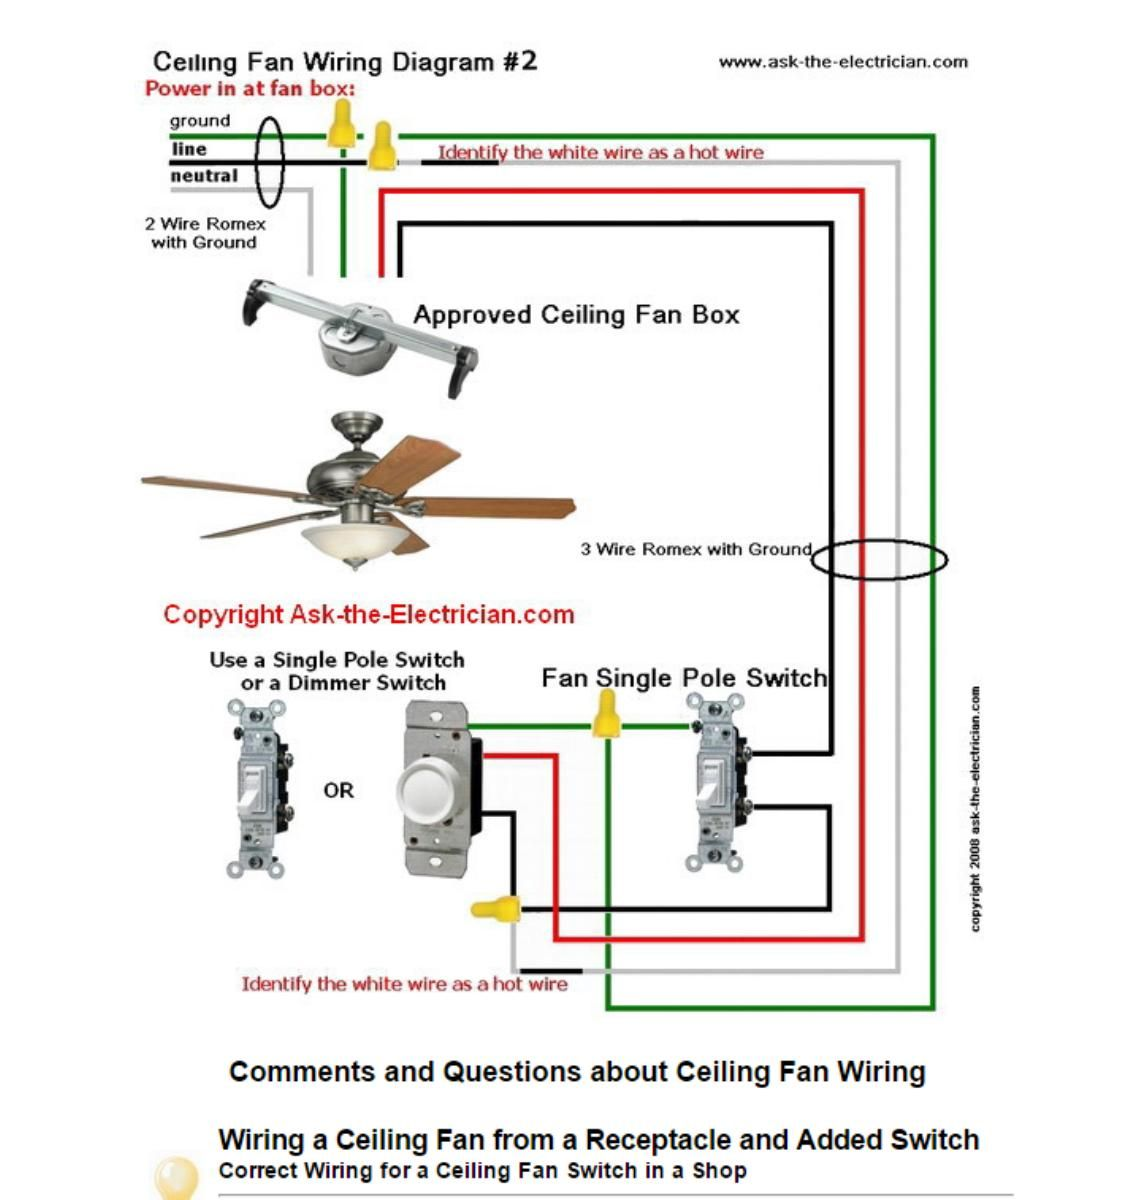 comments and questions about ceiling fan wiring wiring diagram update rh 18 plowe citytours duesseldorf de